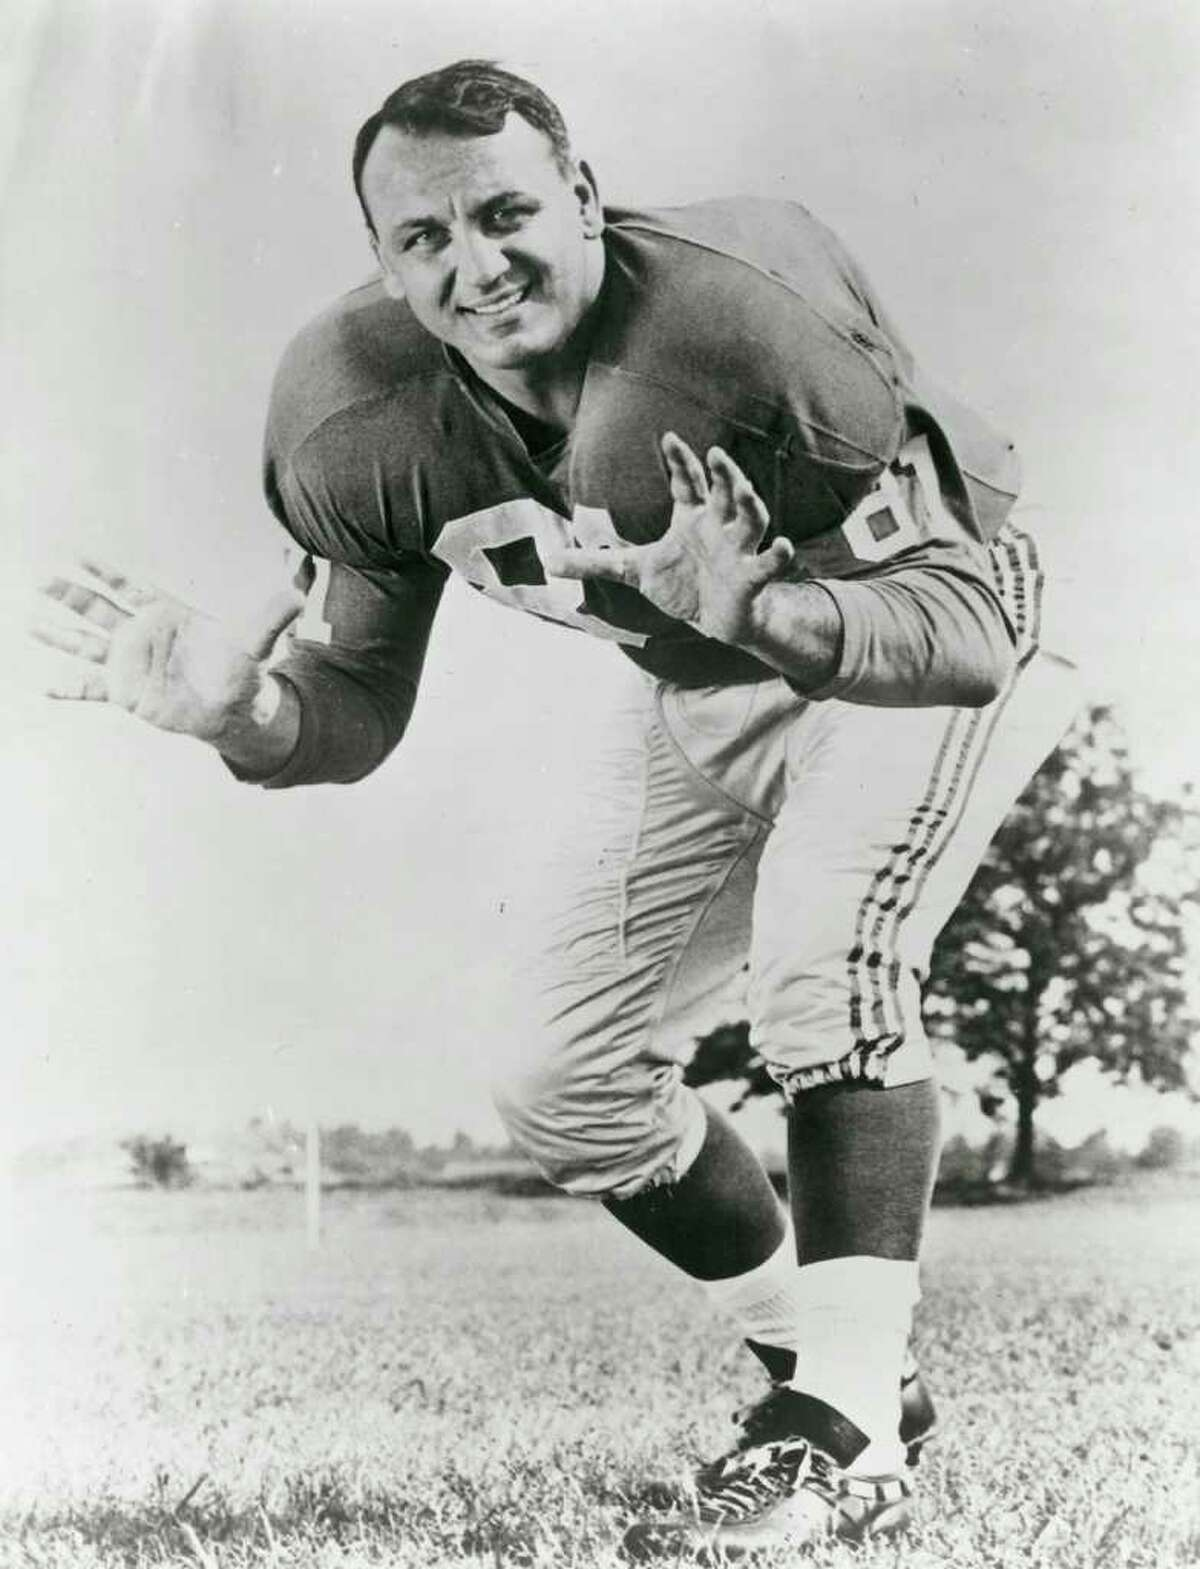 Former New York Giant star defensive end Andy Robustelli, who lived in Stamford, died Tuesday at 85.